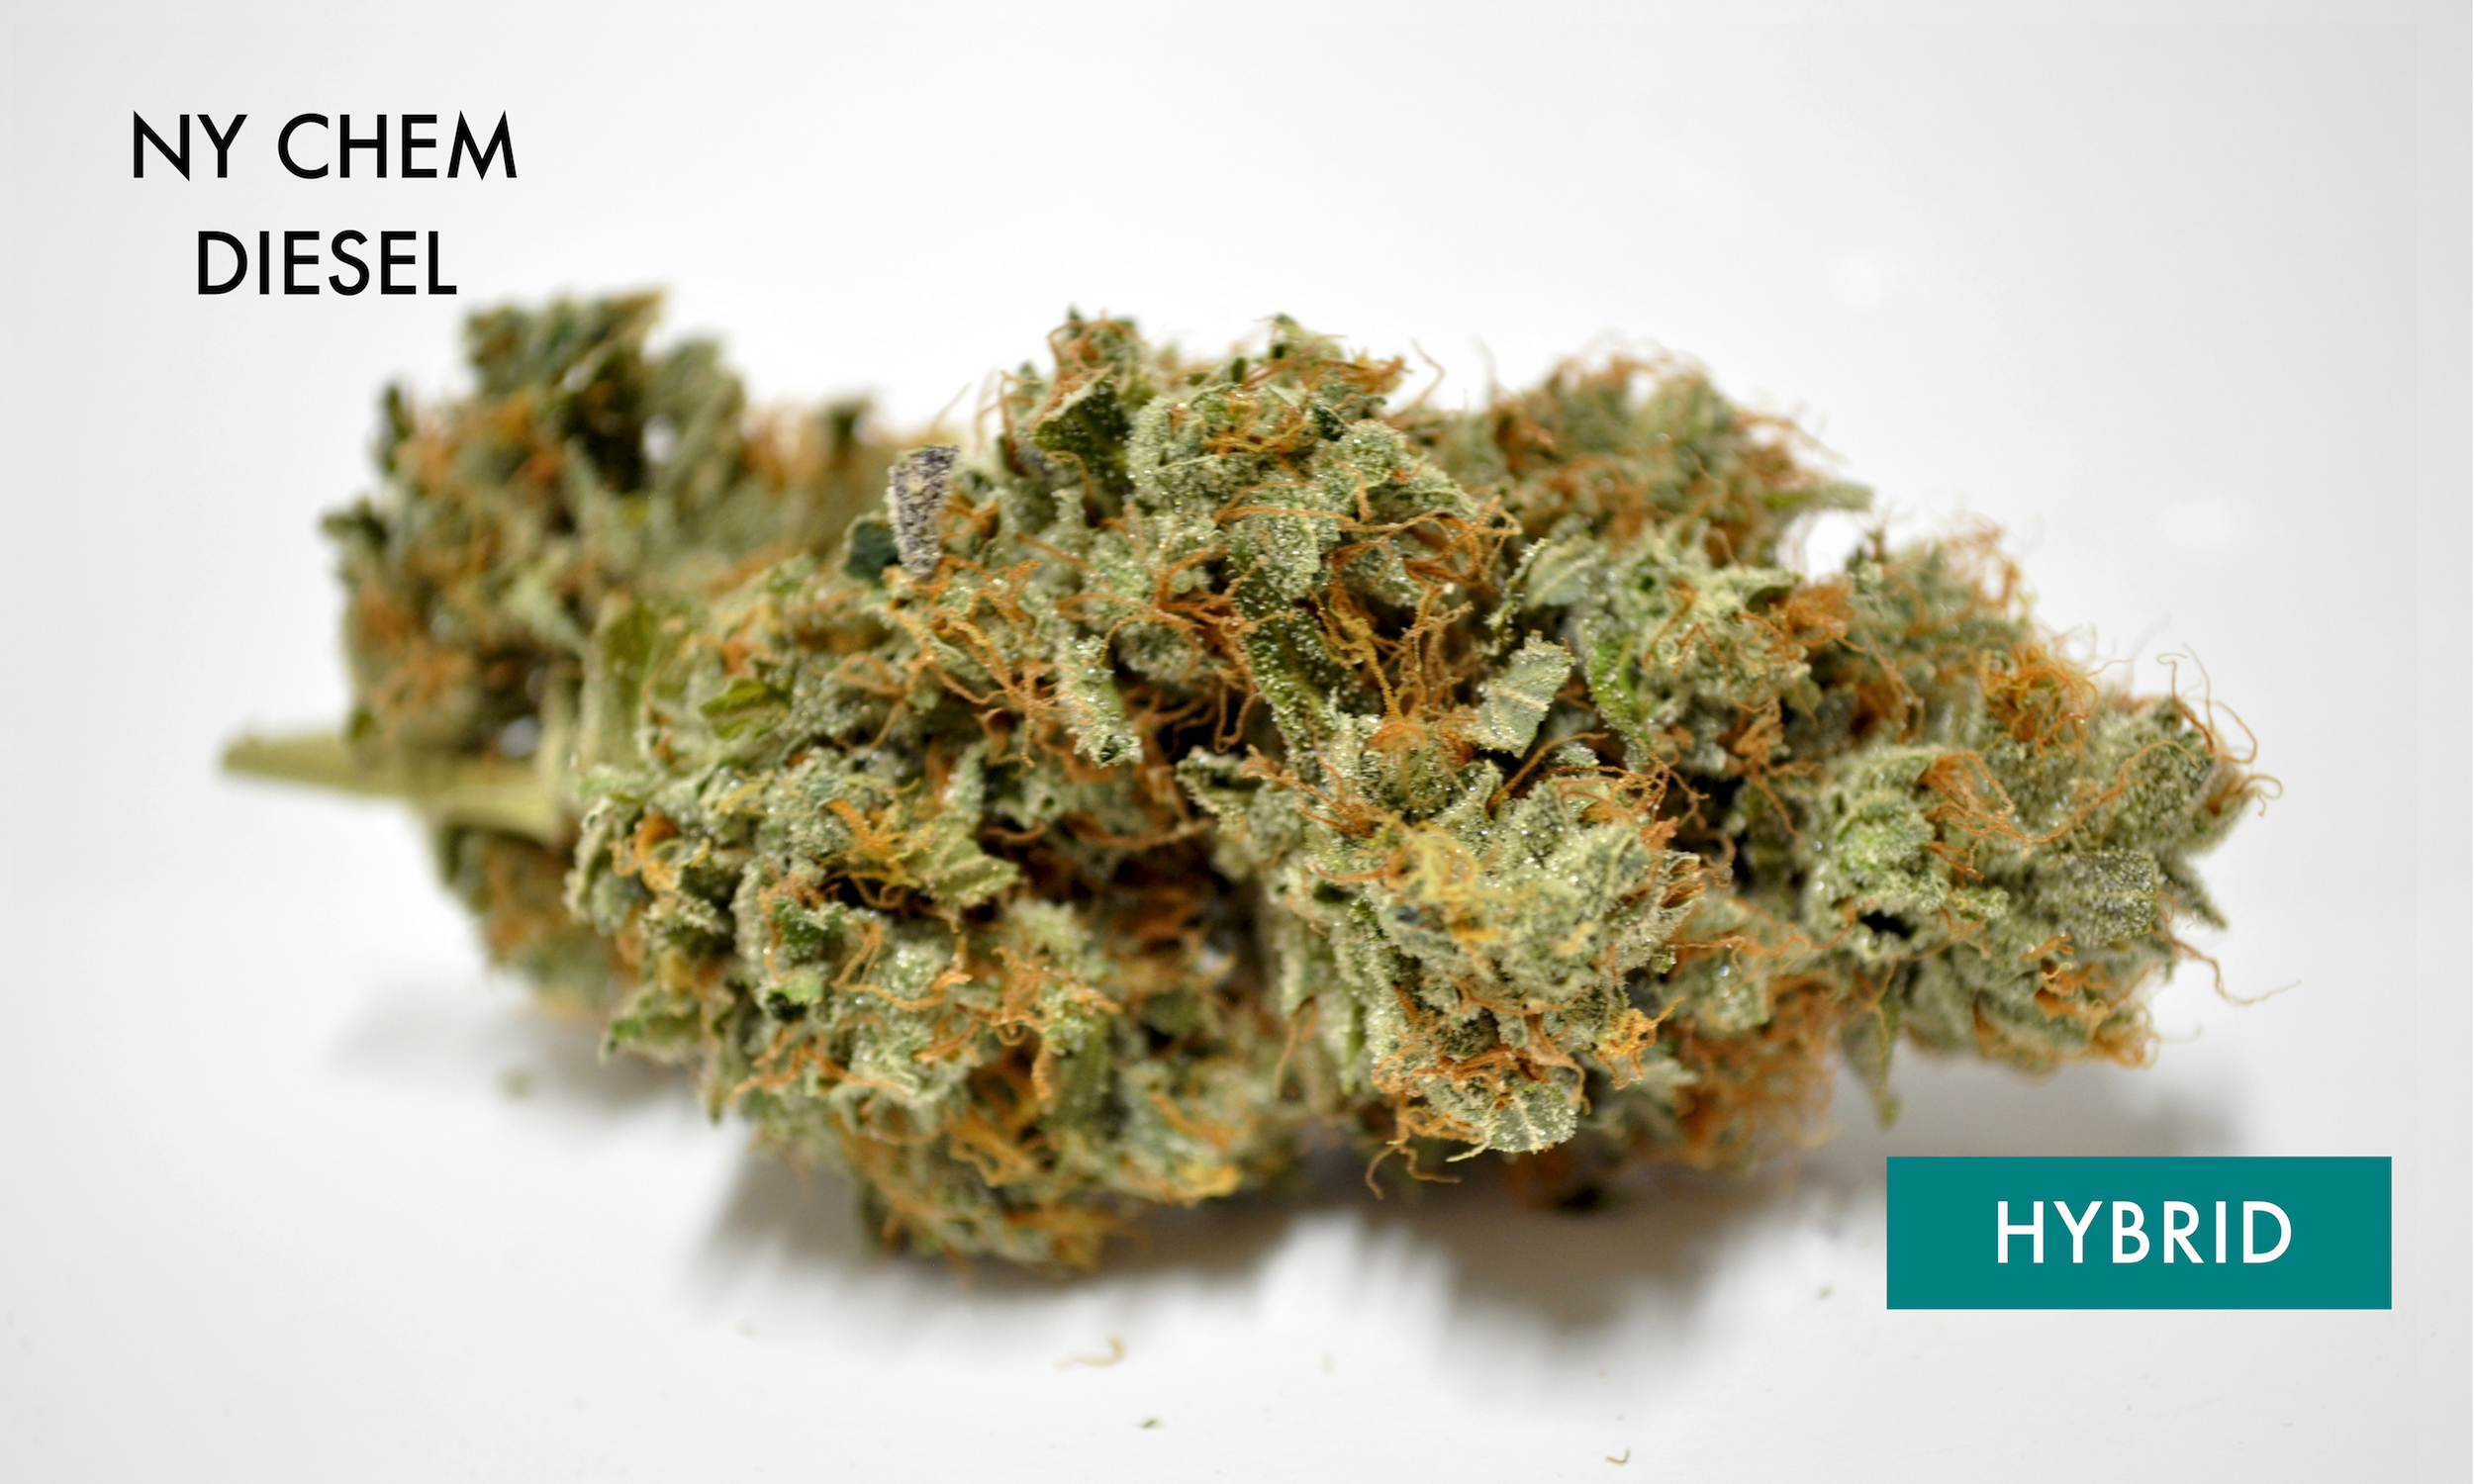 NY Chem Diesel - 60% IndicaNYC Diesel (or Soma Sour Diesel) is a 60% sativa-dominant cross between Mexican and Afghani landraces. This strain provides strong cerebral effects that ease into a deep, full-body relaxation over time. A pungent lime and grapefruit aroma is the mark of a high quality batch, like those that won this strain five Cannabis Cup trophies in the early 2000s. NYC Diesel's happy, talkative qualities make this hybrid a good choice for social activities and many anxiety-prone consumers praise it for its paranoia-free effects.